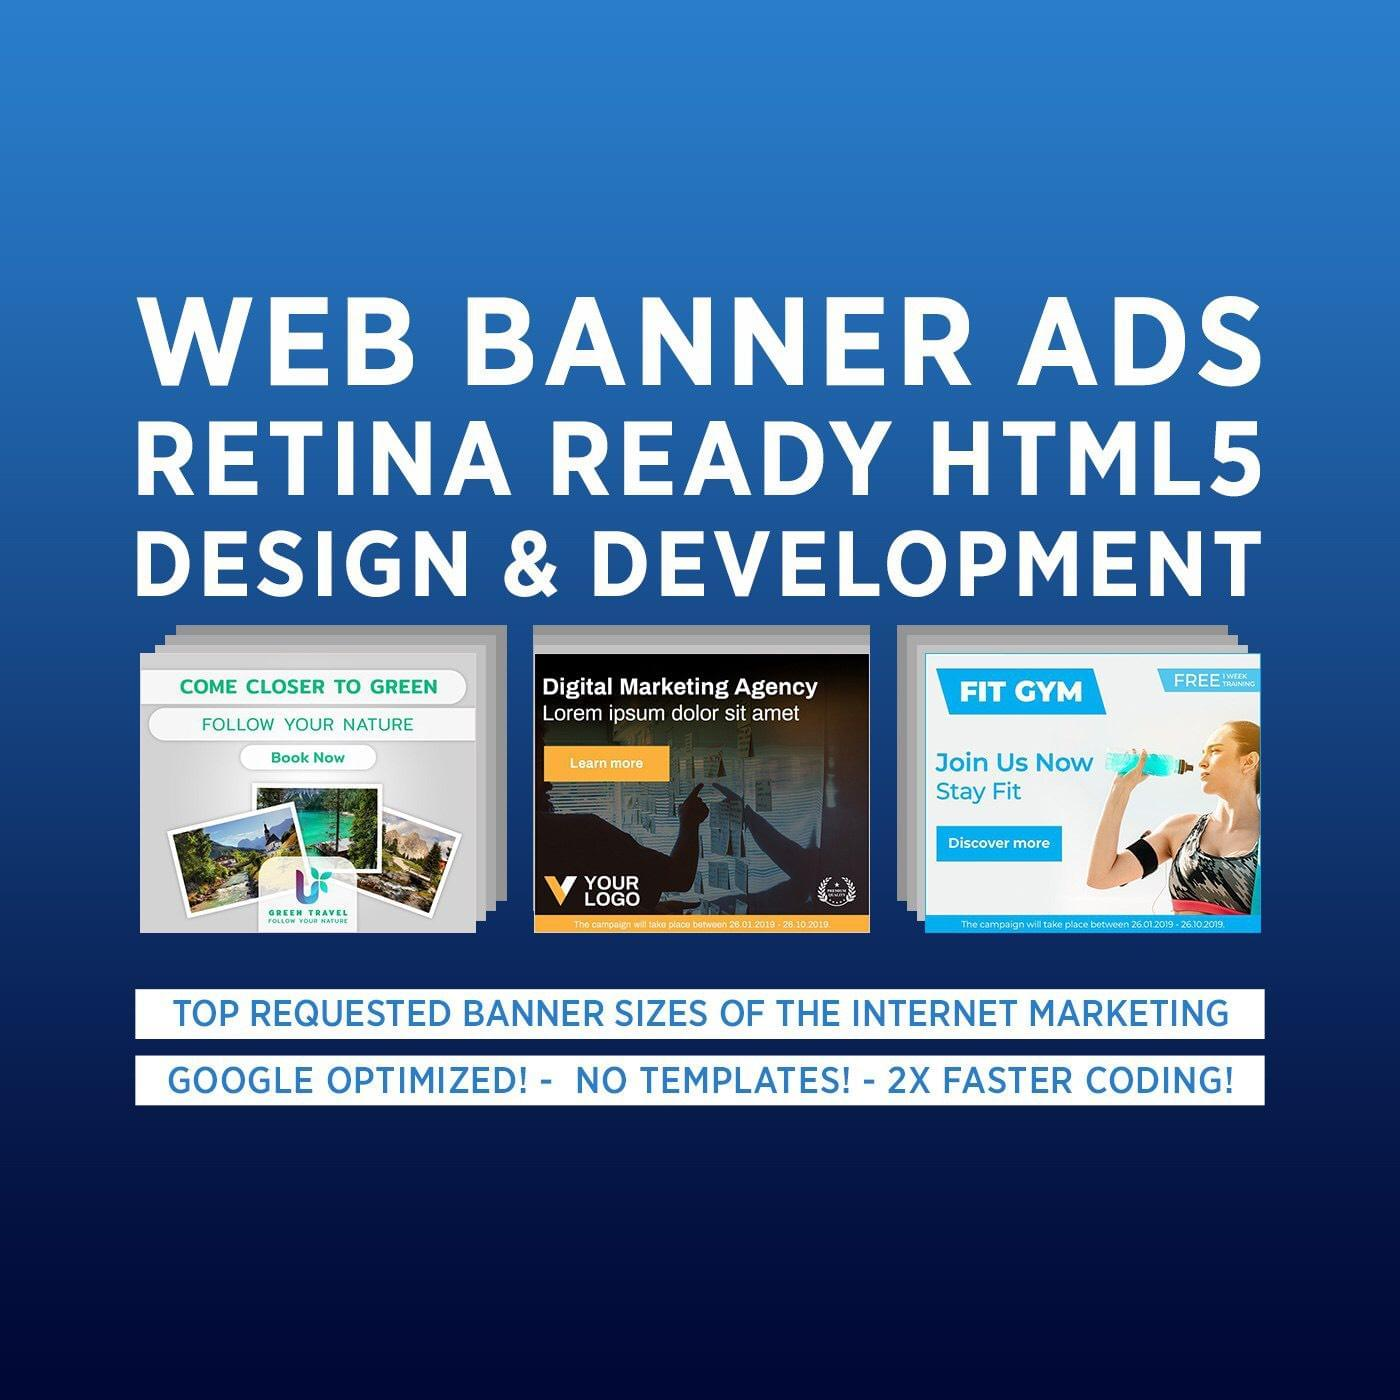 Retina-ready Professional HTML5 Banner ( Design & Development ) by cihanzengin - 114469